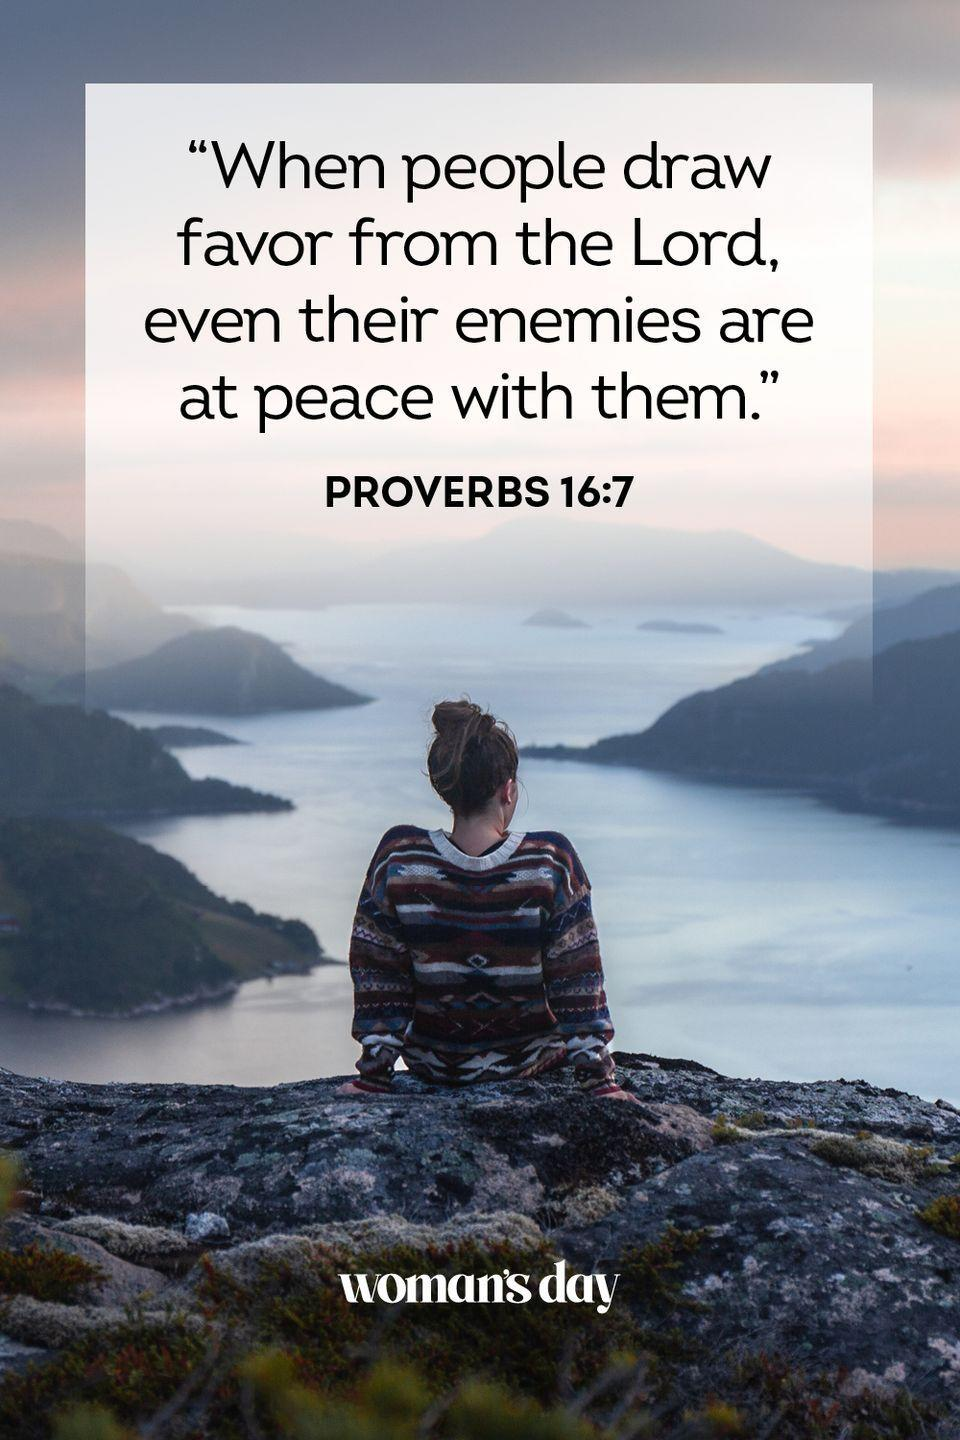 """<p>""""When people draw favor from the Lord, even their enemies are at peace with them."""" — Proverbs 16:7</p><p><strong>The Good News</strong>: There is nothing that can truly hurt those who seek peace by following the Lord. He is watching out for everyone.</p>"""